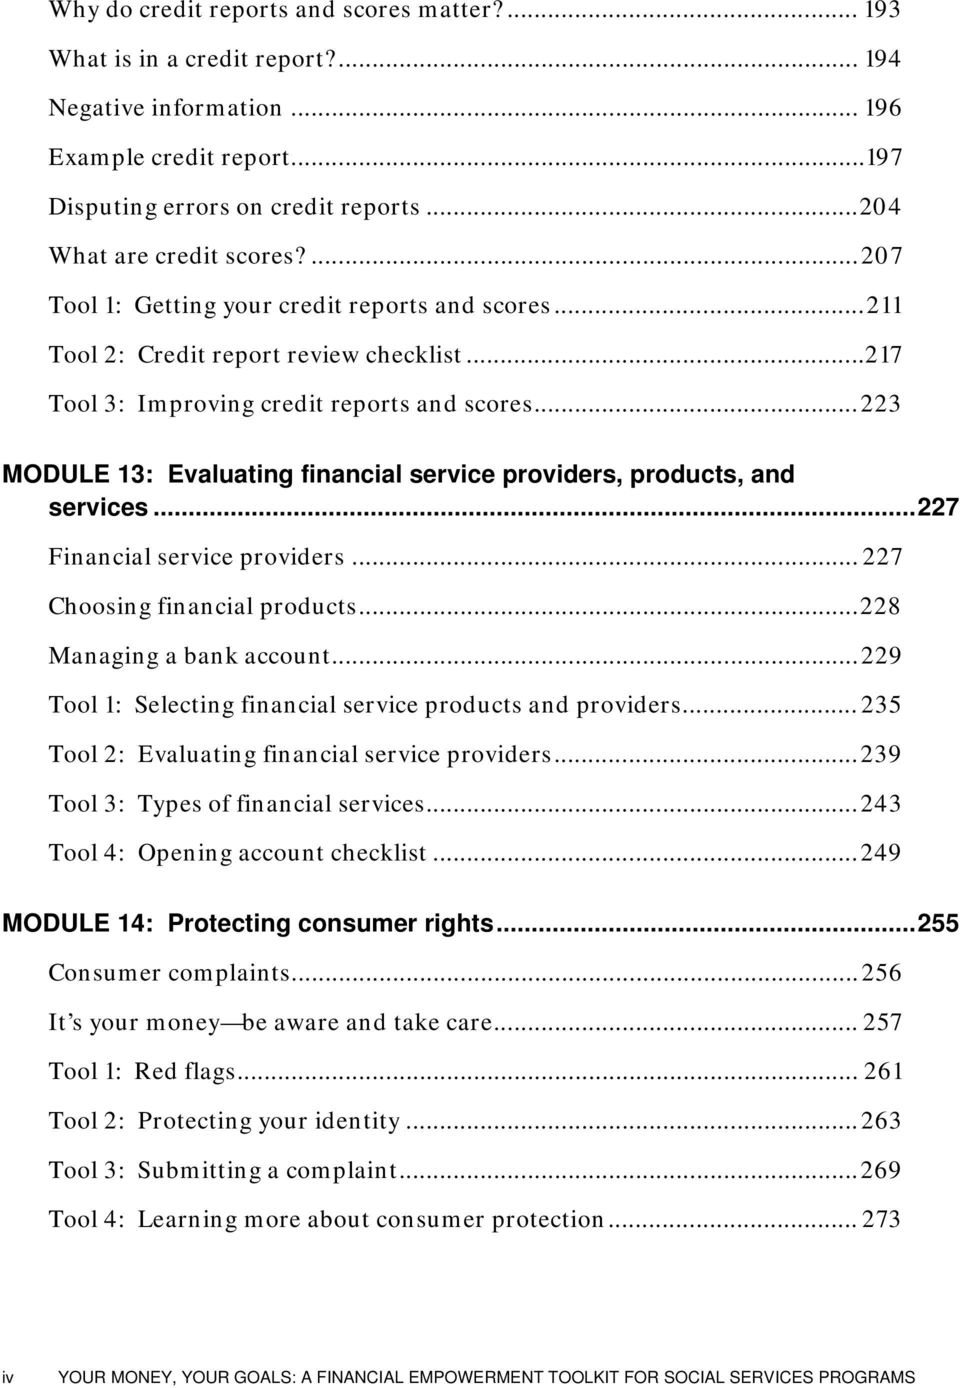 ..223 MODULE 13: Evaluating financial service providers, products, and services...227 Financial service providers... 227 Choosing financial products...228 Managing a bank account.